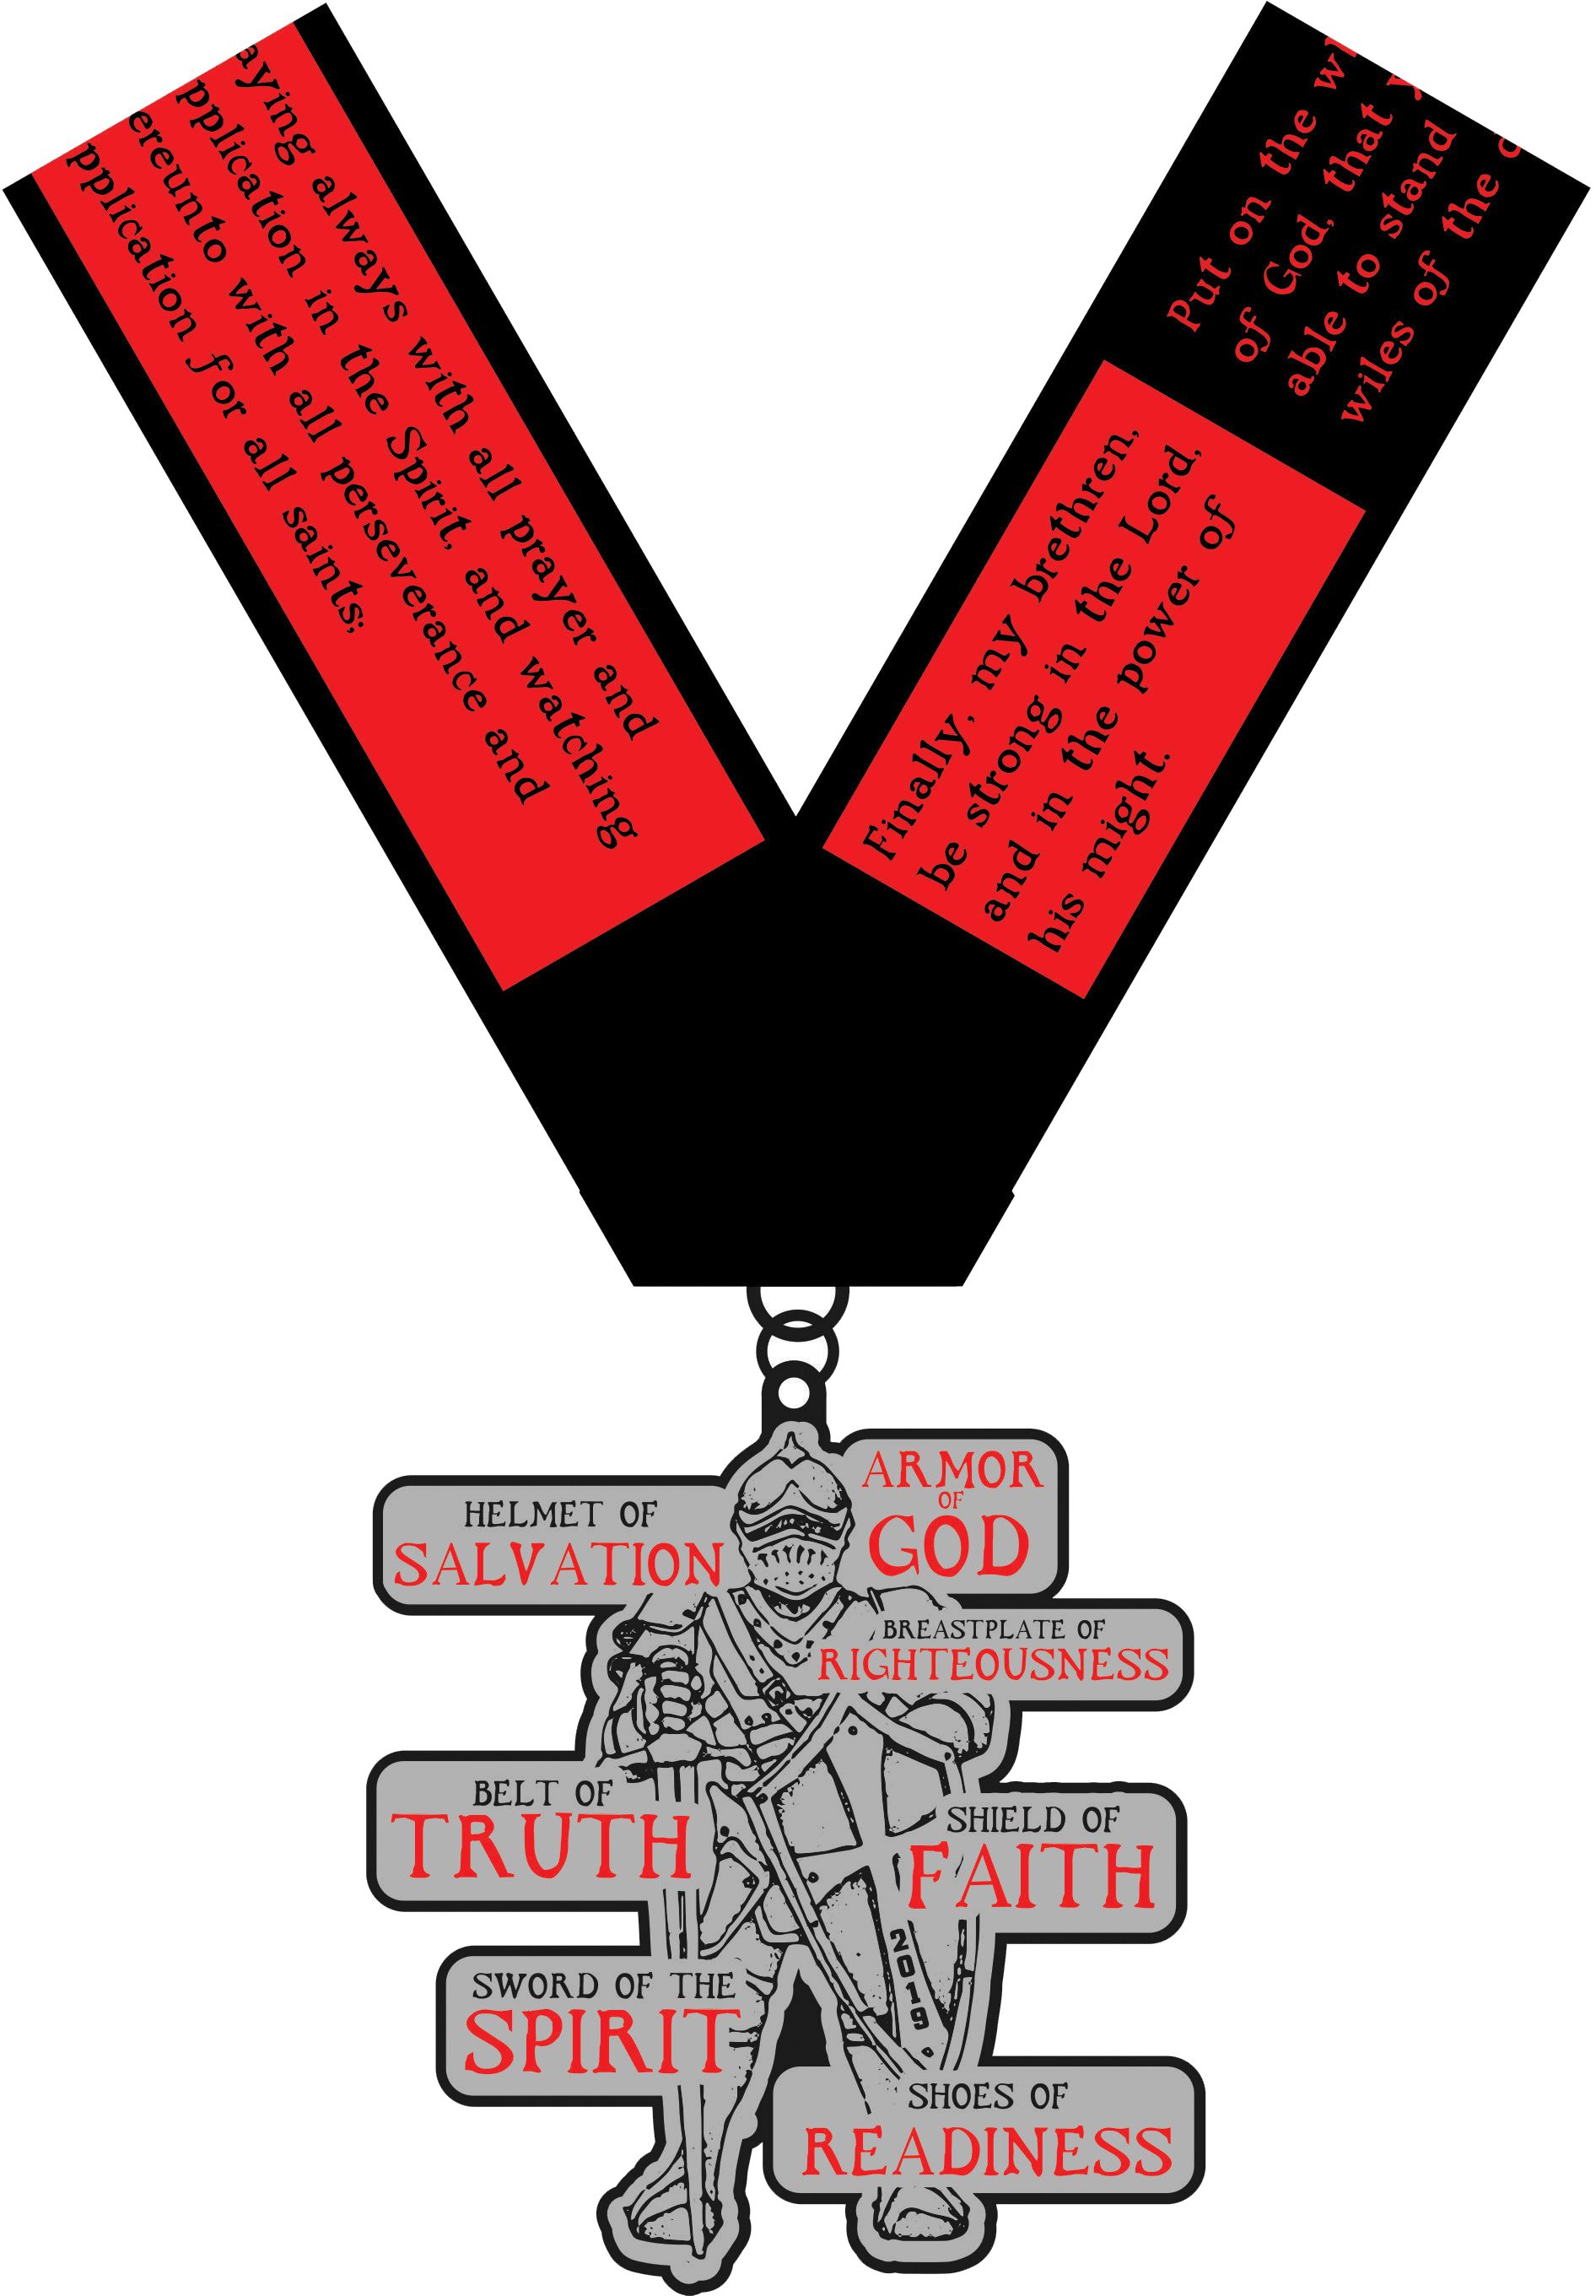 Clipart i am your truth your righteous transparent download 2019 Armor of God 1 Mile, 5K, 10K, 13.1, 26.2 - Milwaukee Tickets ... transparent download